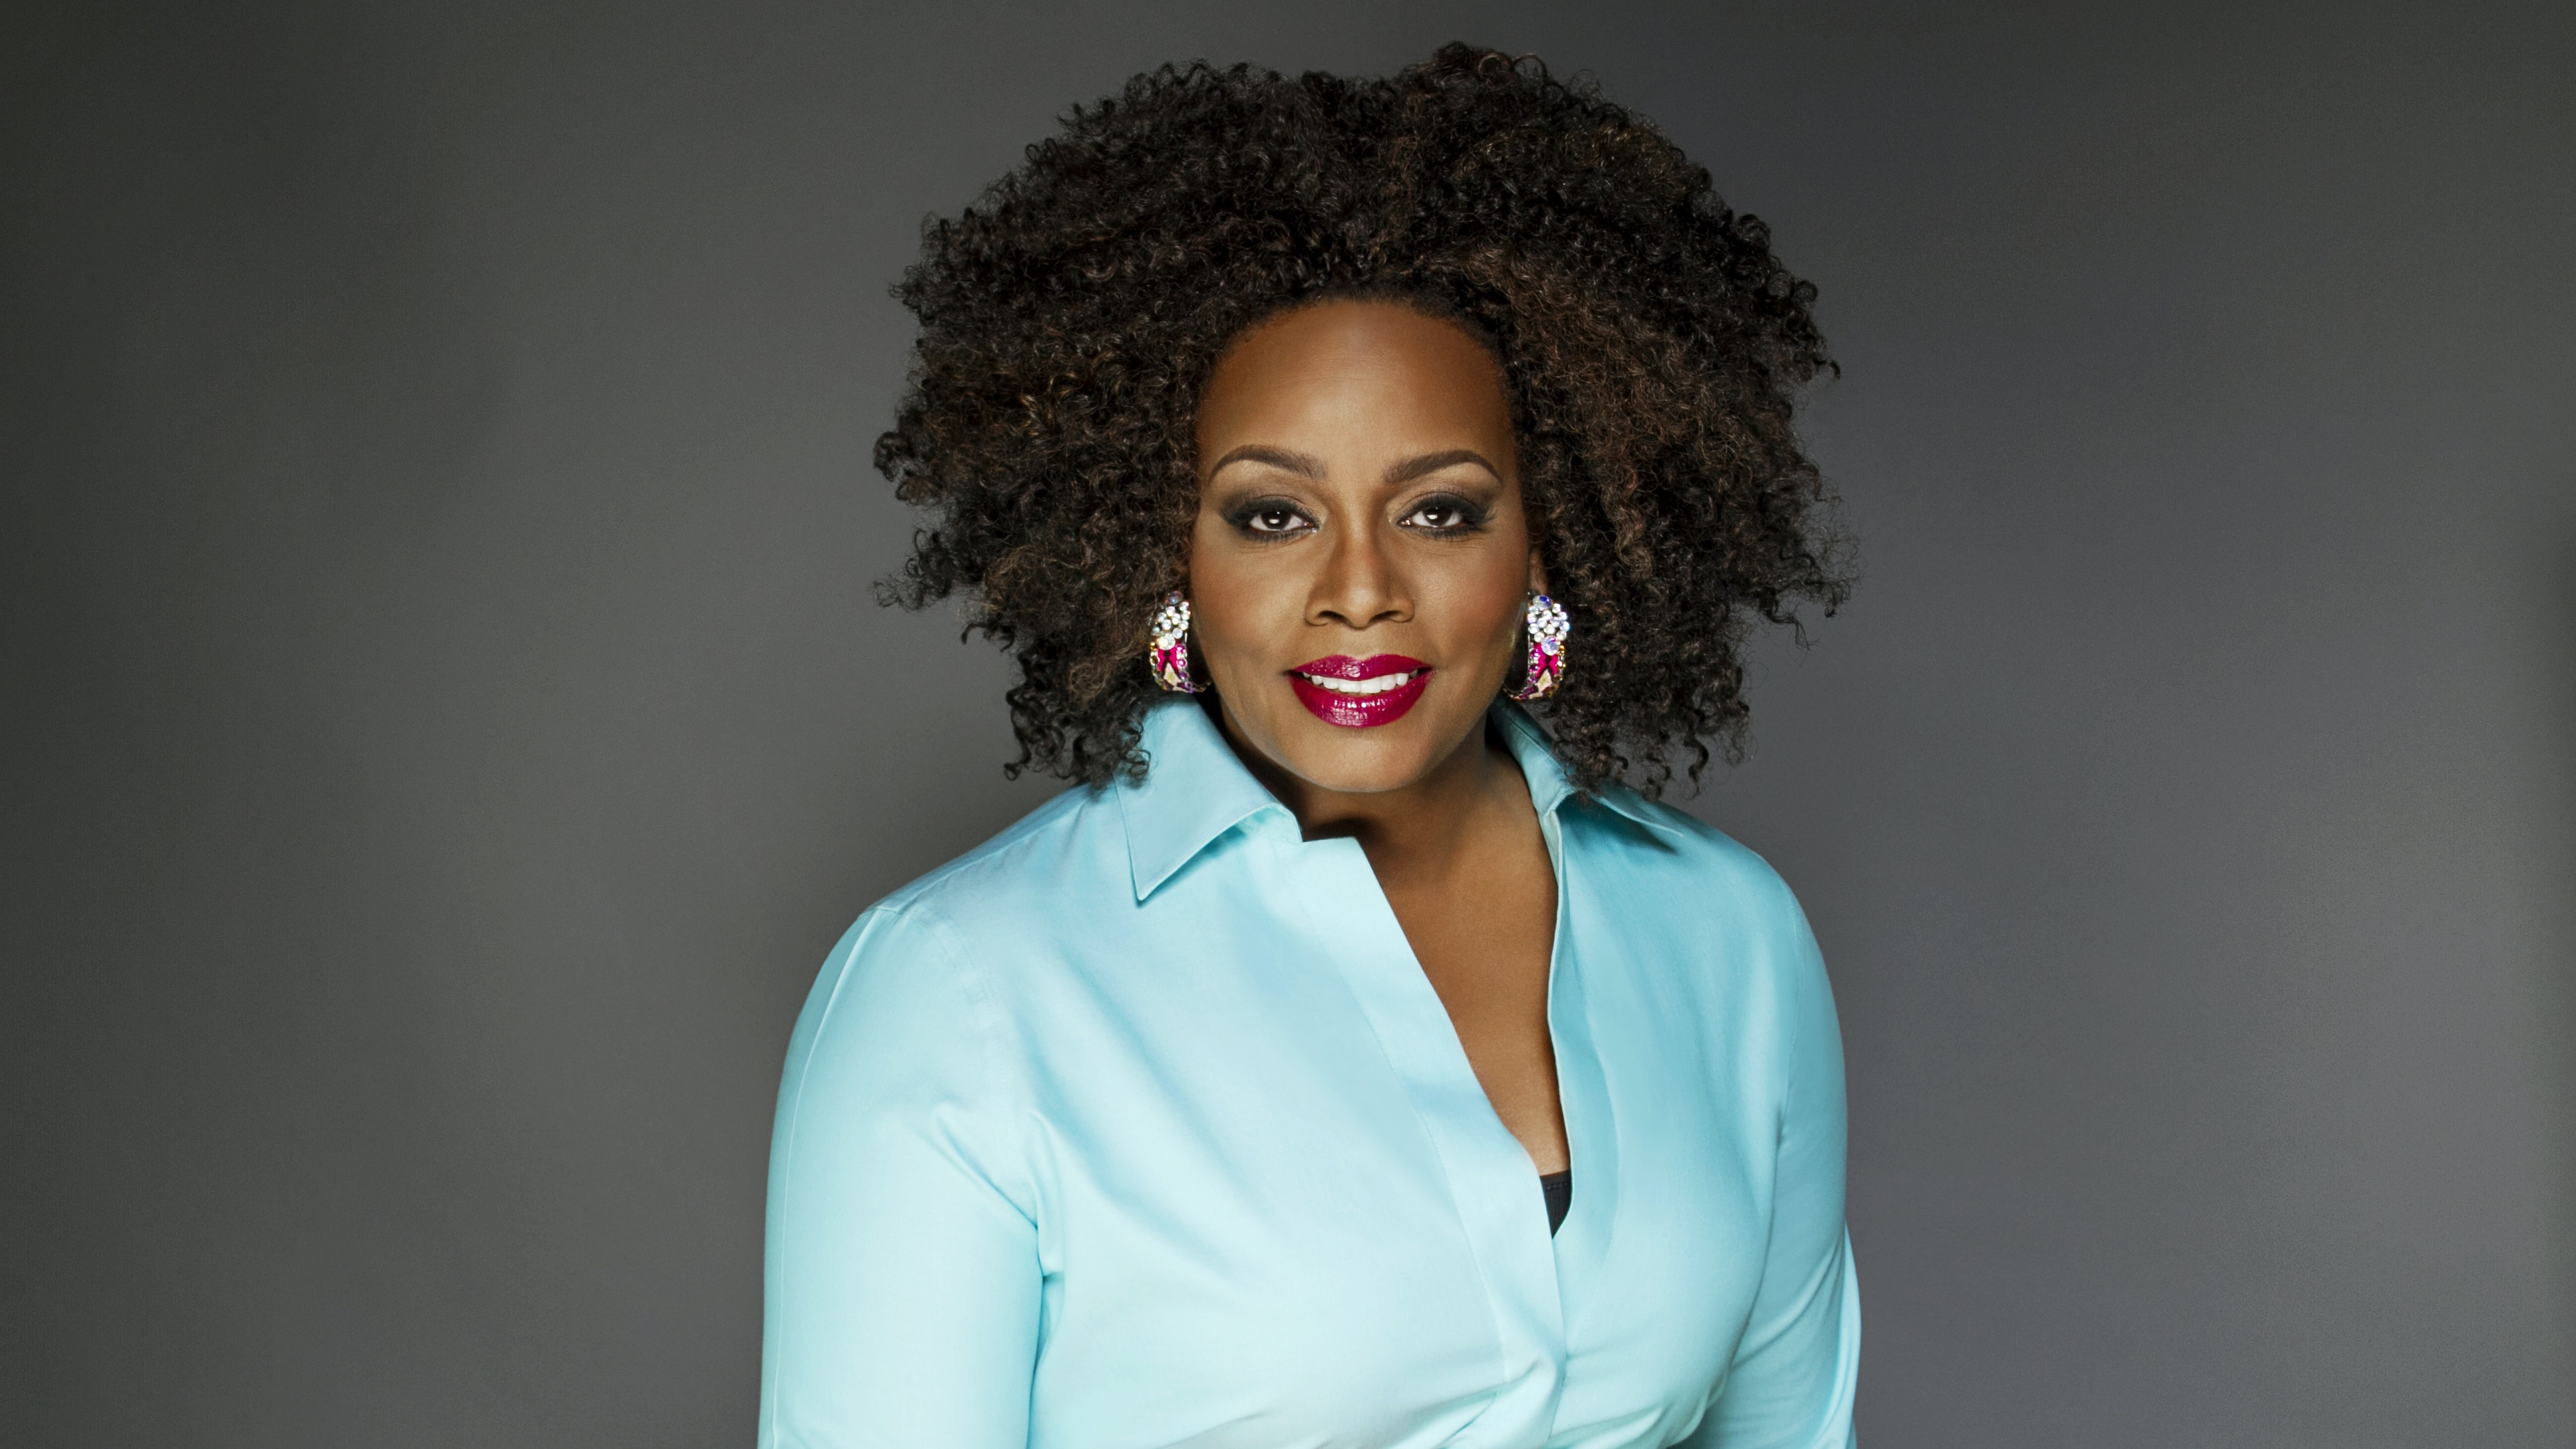 Dianne Reeves – With Peter Martin (Piano), Romero Lubambo (Guitar), Reginald Veal (Double Bass) and Terreon Gully (Drums)